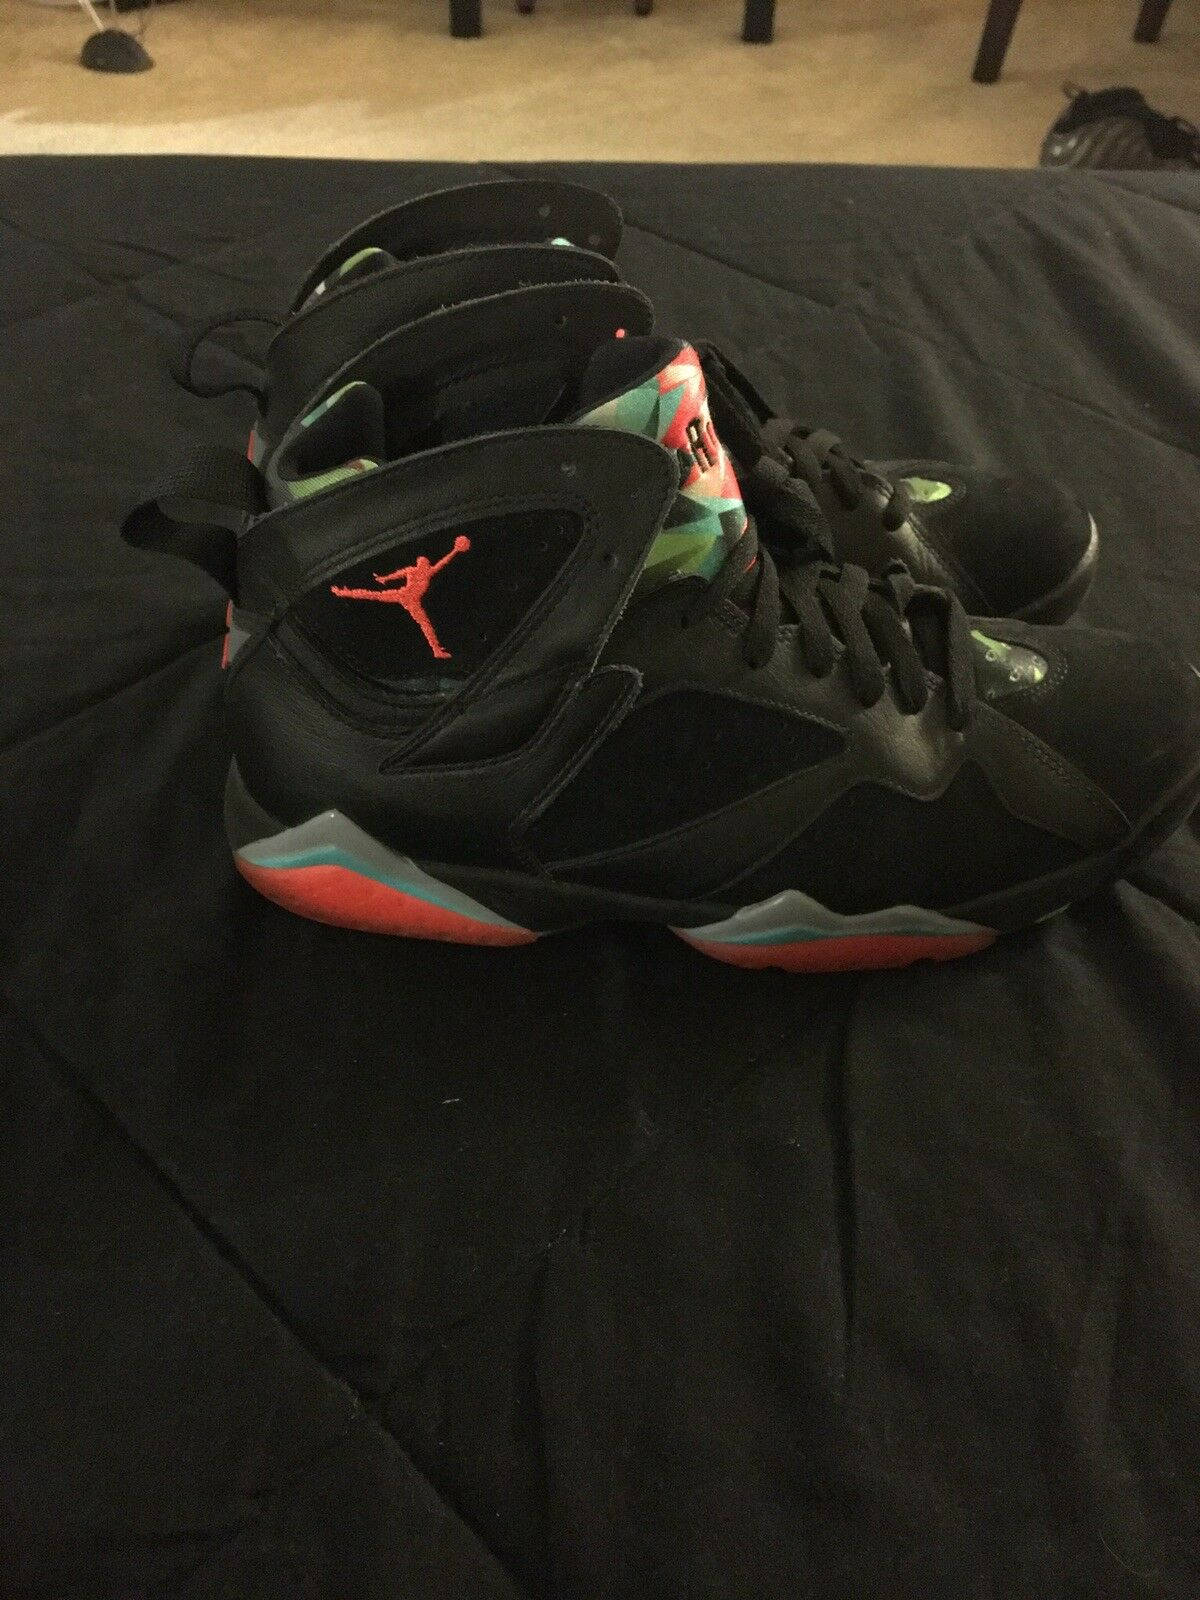 Nike Jordan Retro 7 30th Anniversary Marvin the Martian Barcelona Nights Cheap women's shoes women's shoes